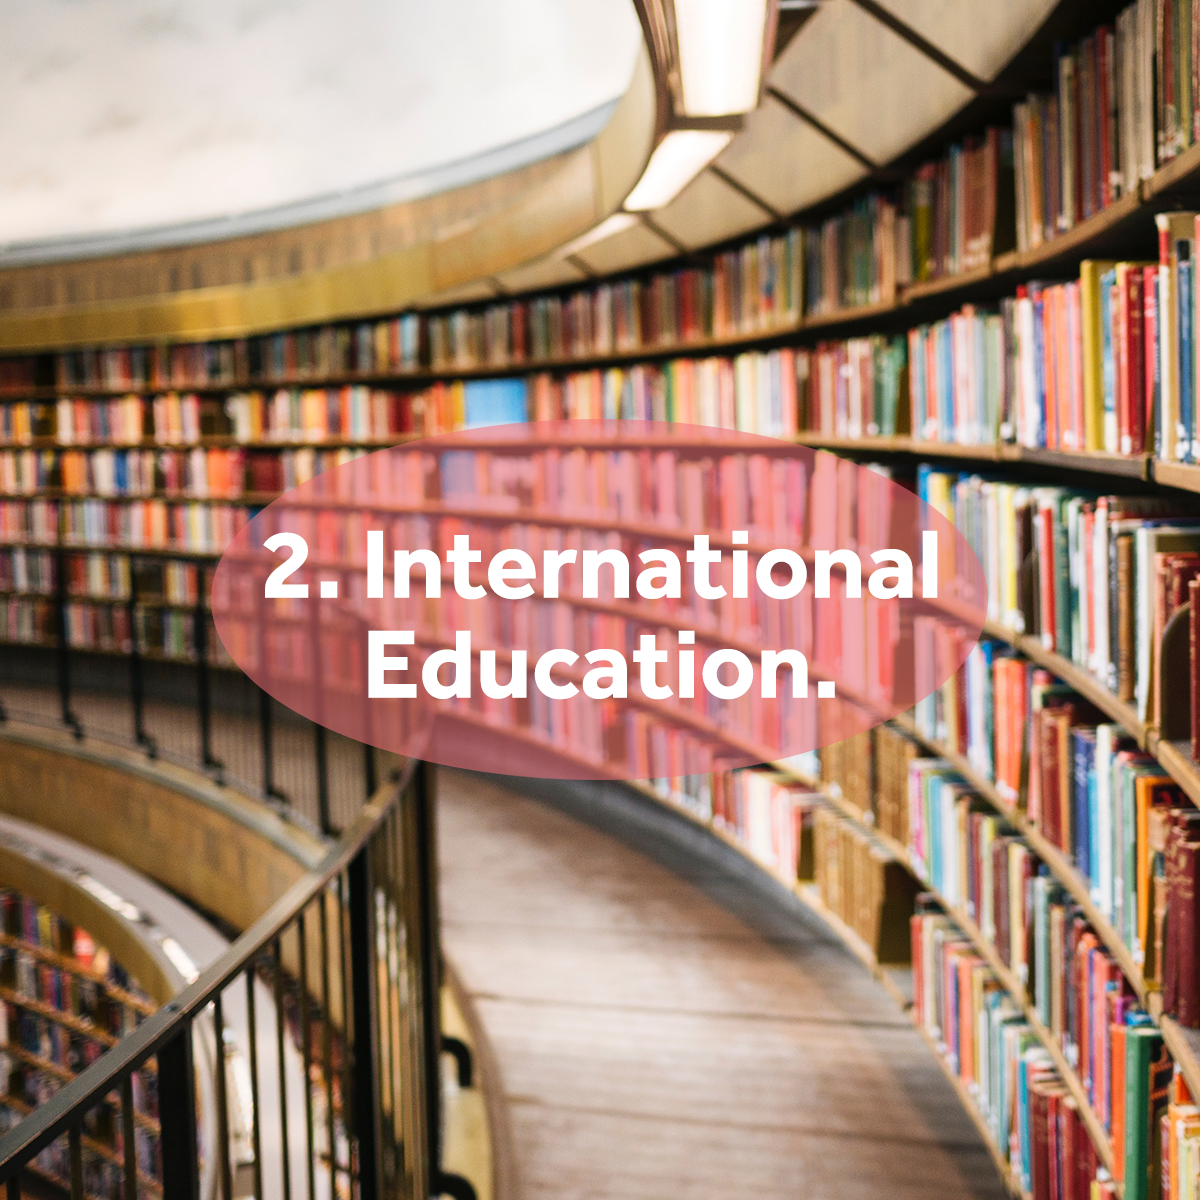 International education - reasons to study abroad